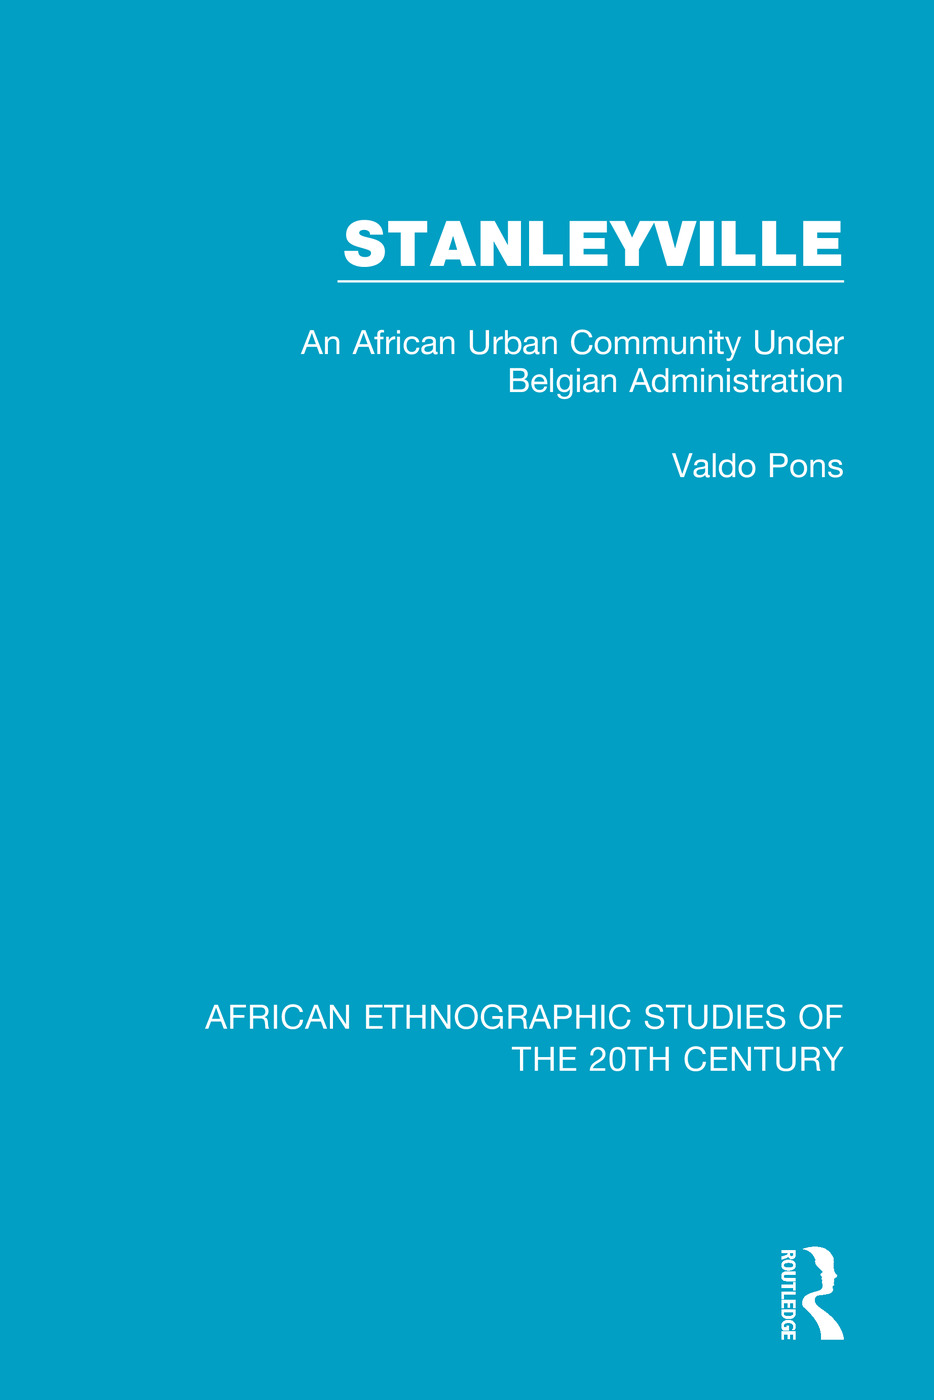 Stanleyville: An African Urban Community Under Belgian Administration book cover